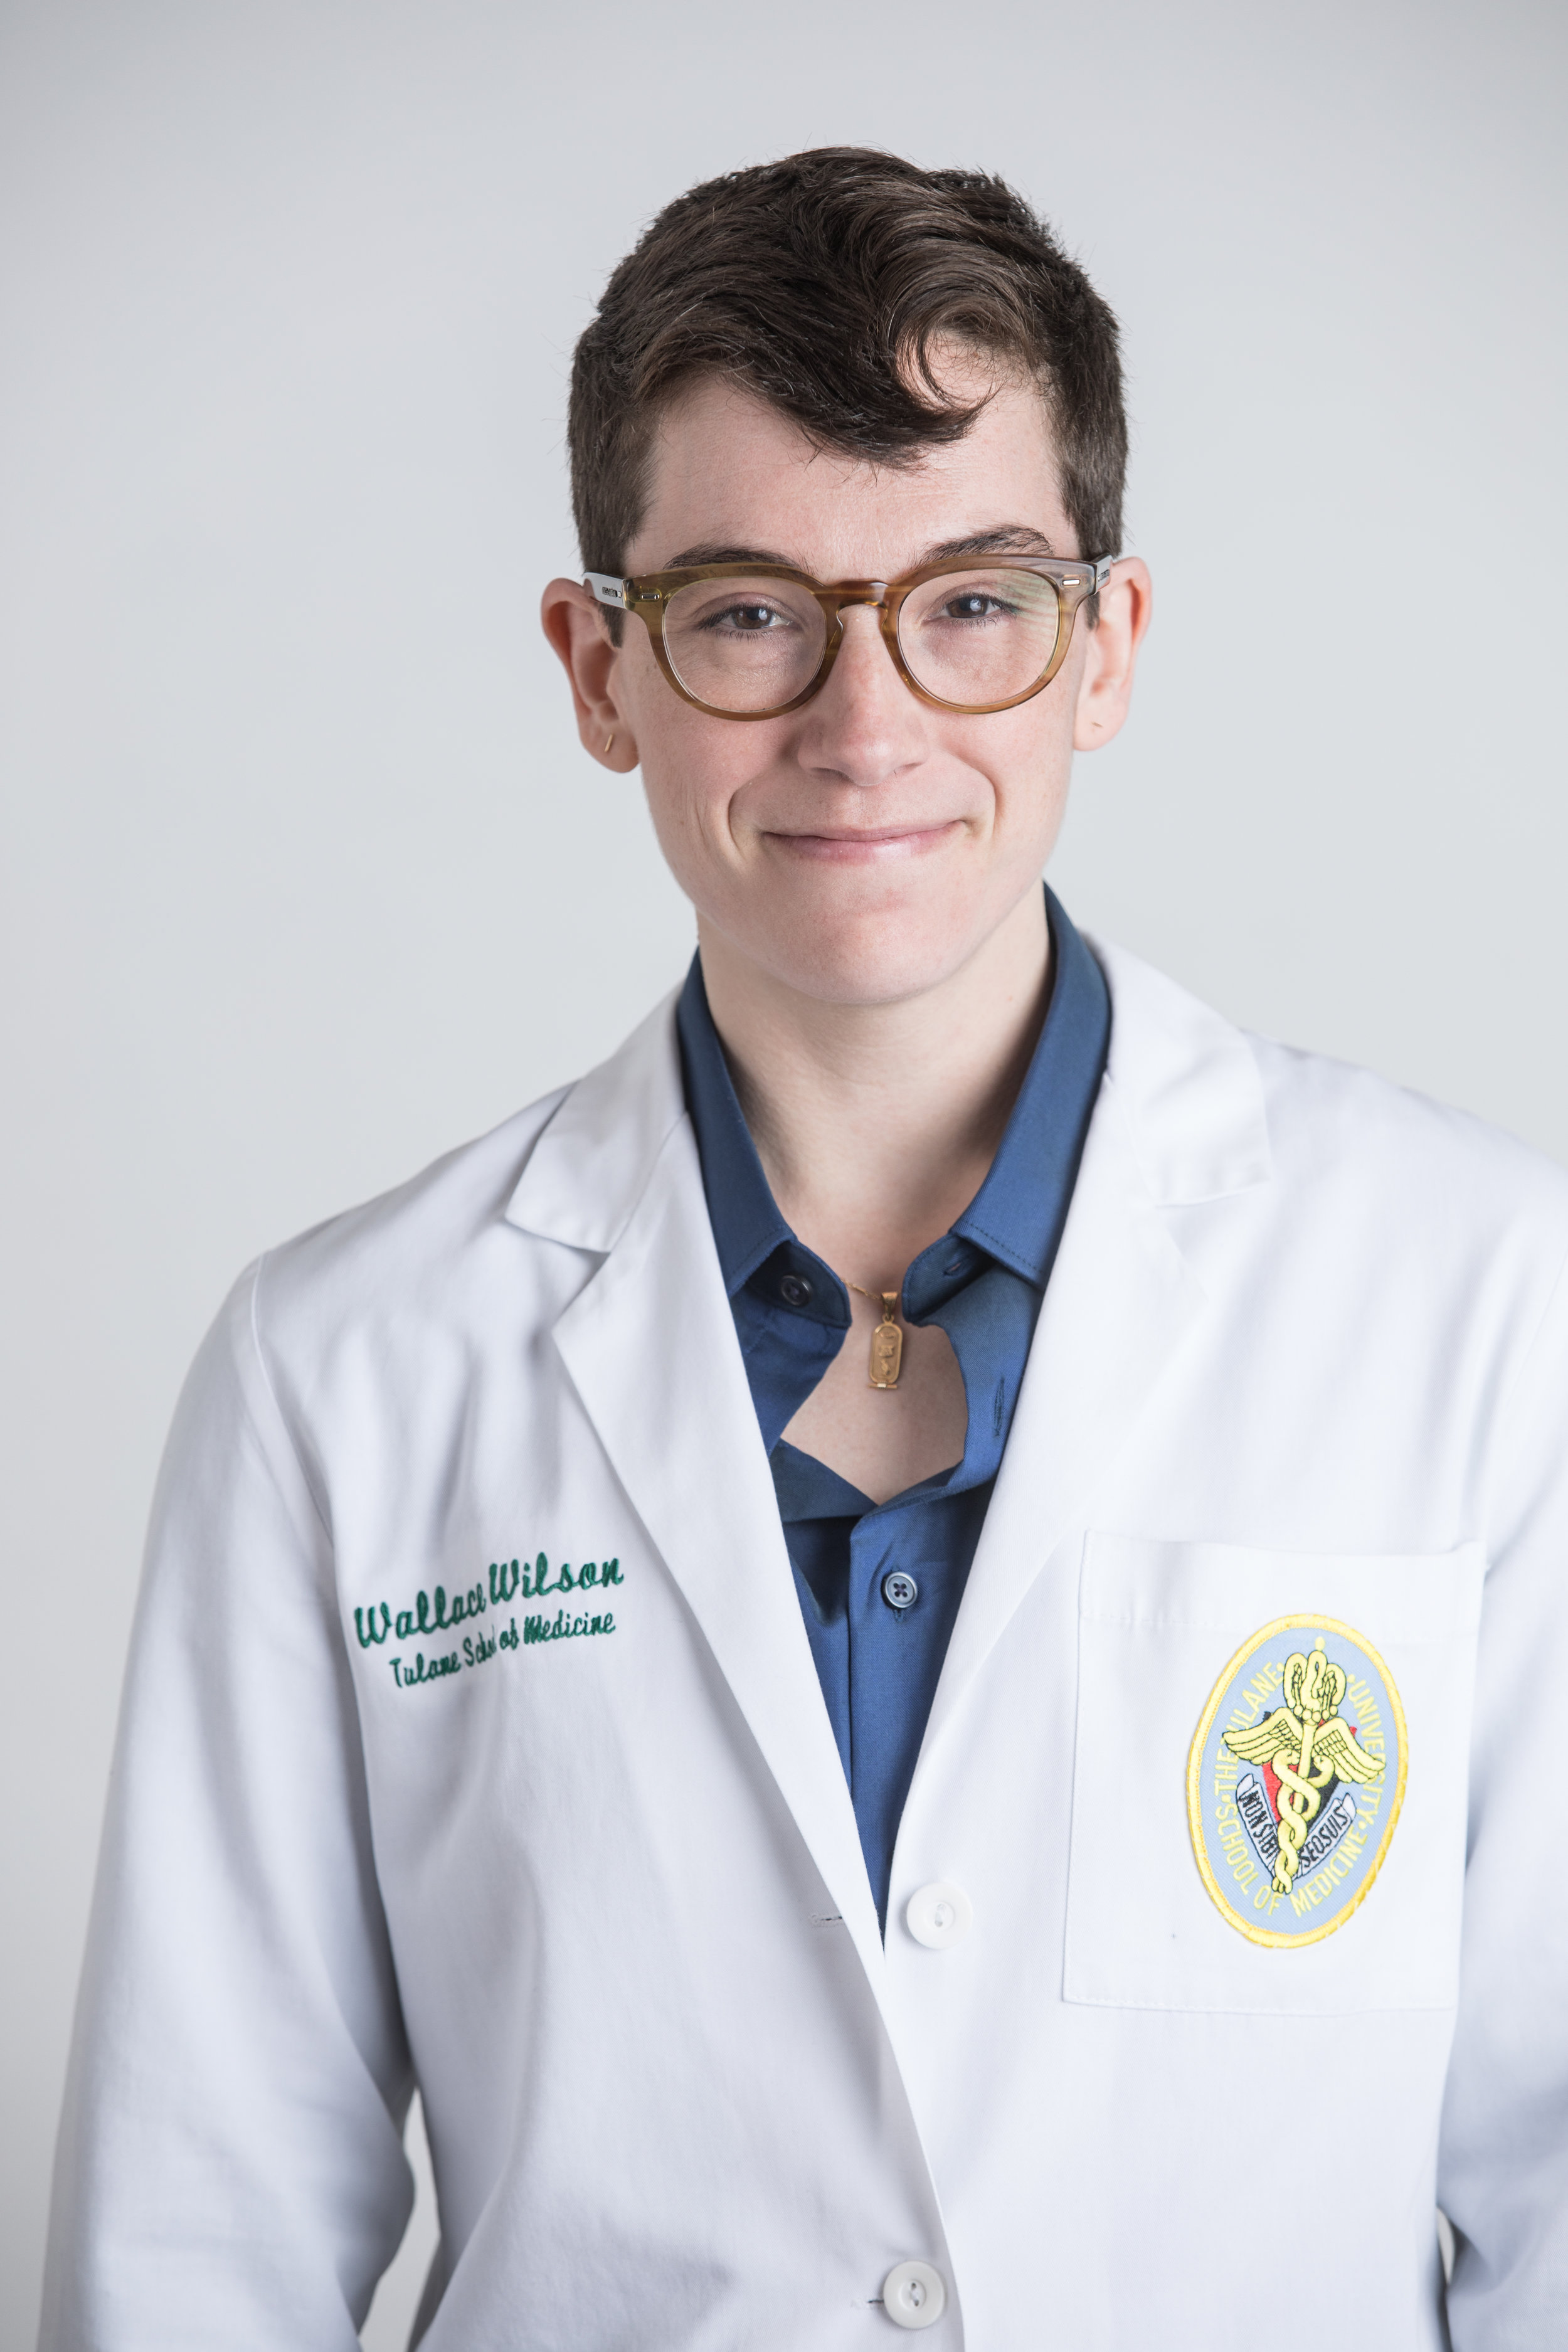 medical-residency-headshot-zack-smith-ZSMITH-2018-03-09-9681 HiRes.jpg